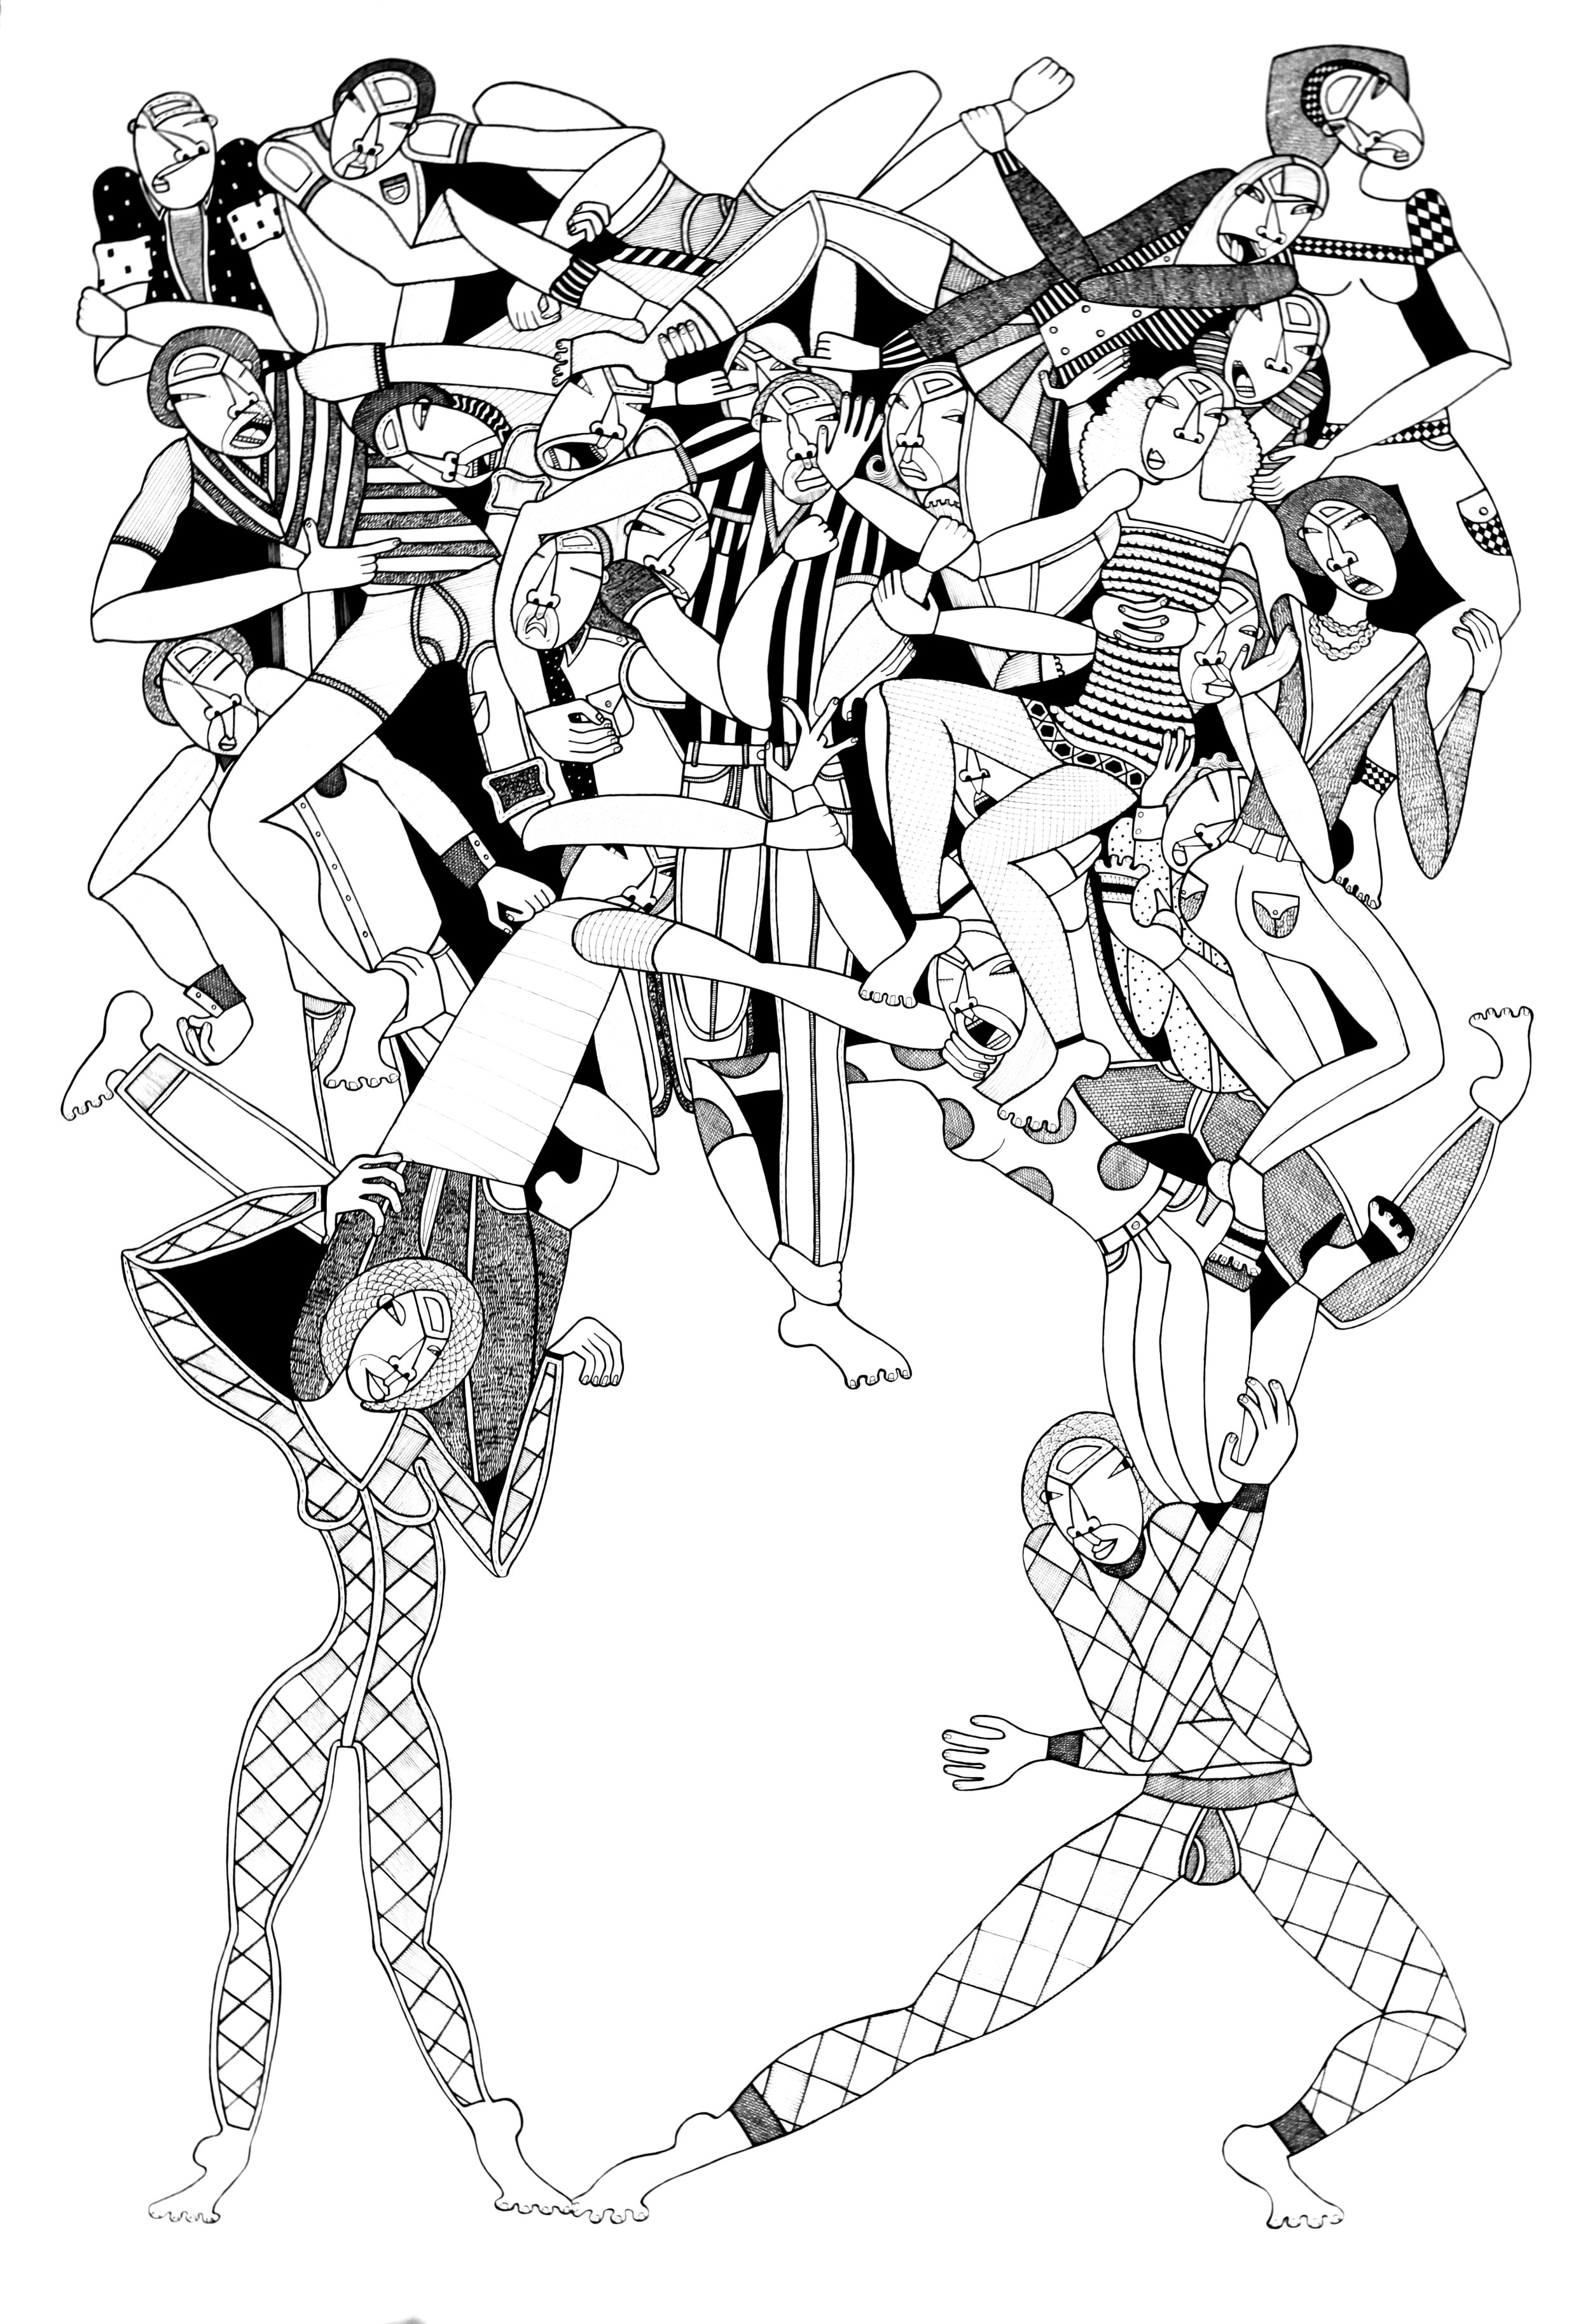 """Garden of Heathen, 44""""x 30"""", ink on paper, 2010, private collection"""